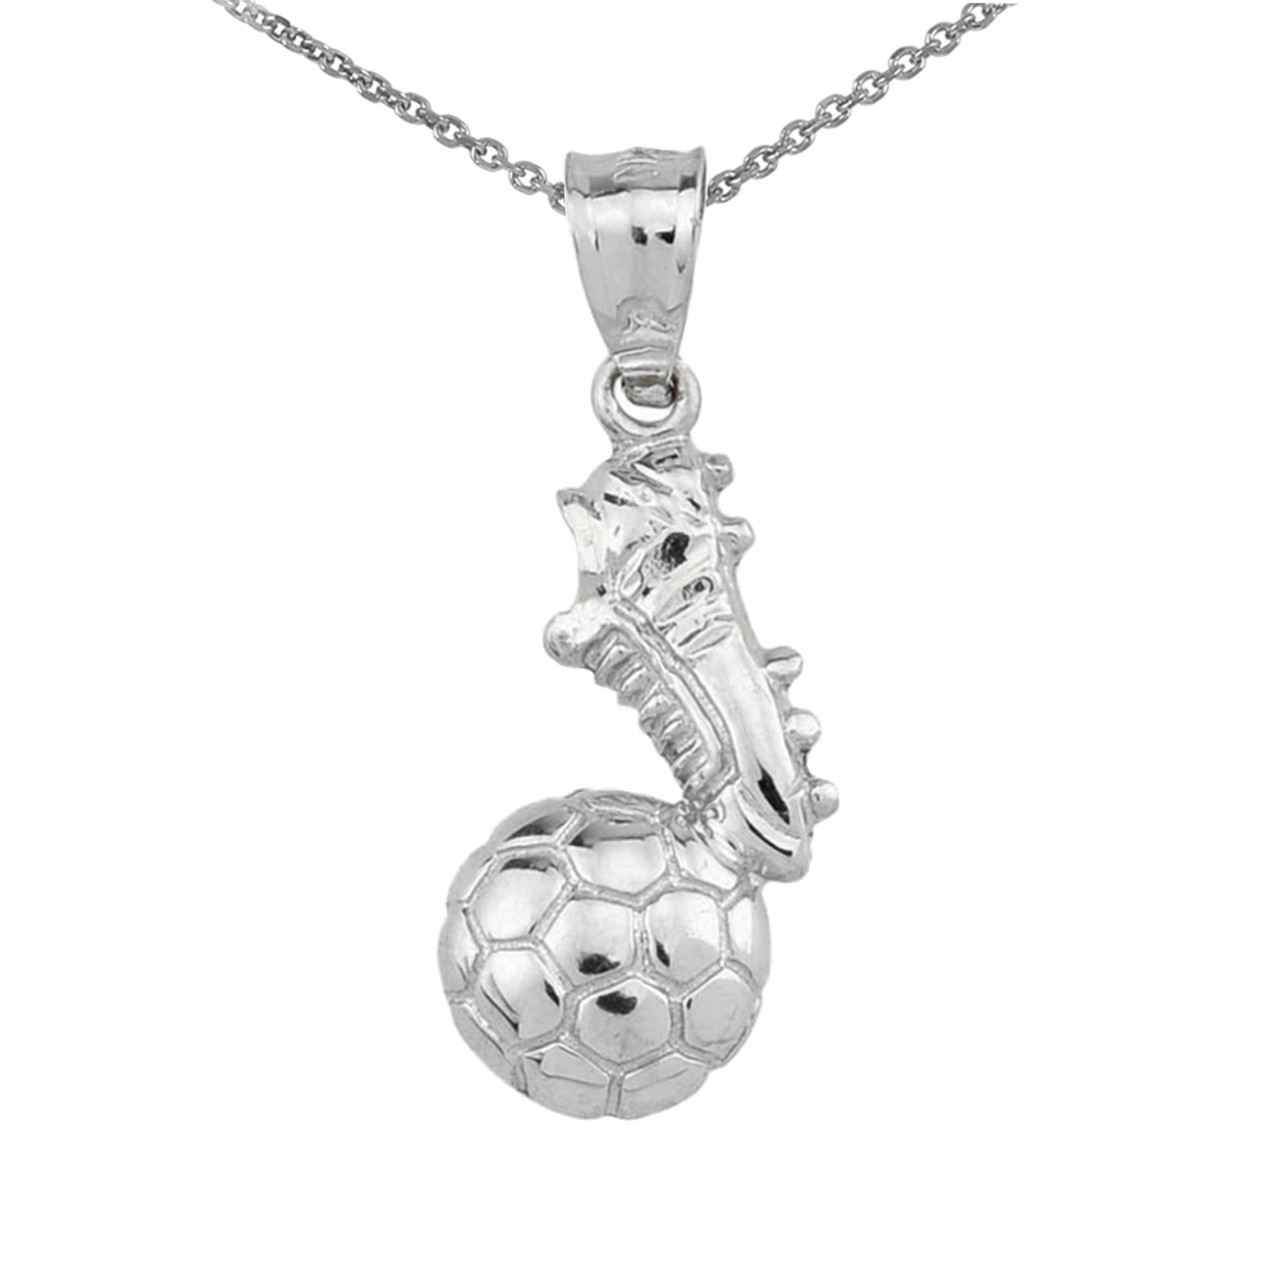 Sports Charms 10k White Gold Textured Soccer Ball Pendant Necklace